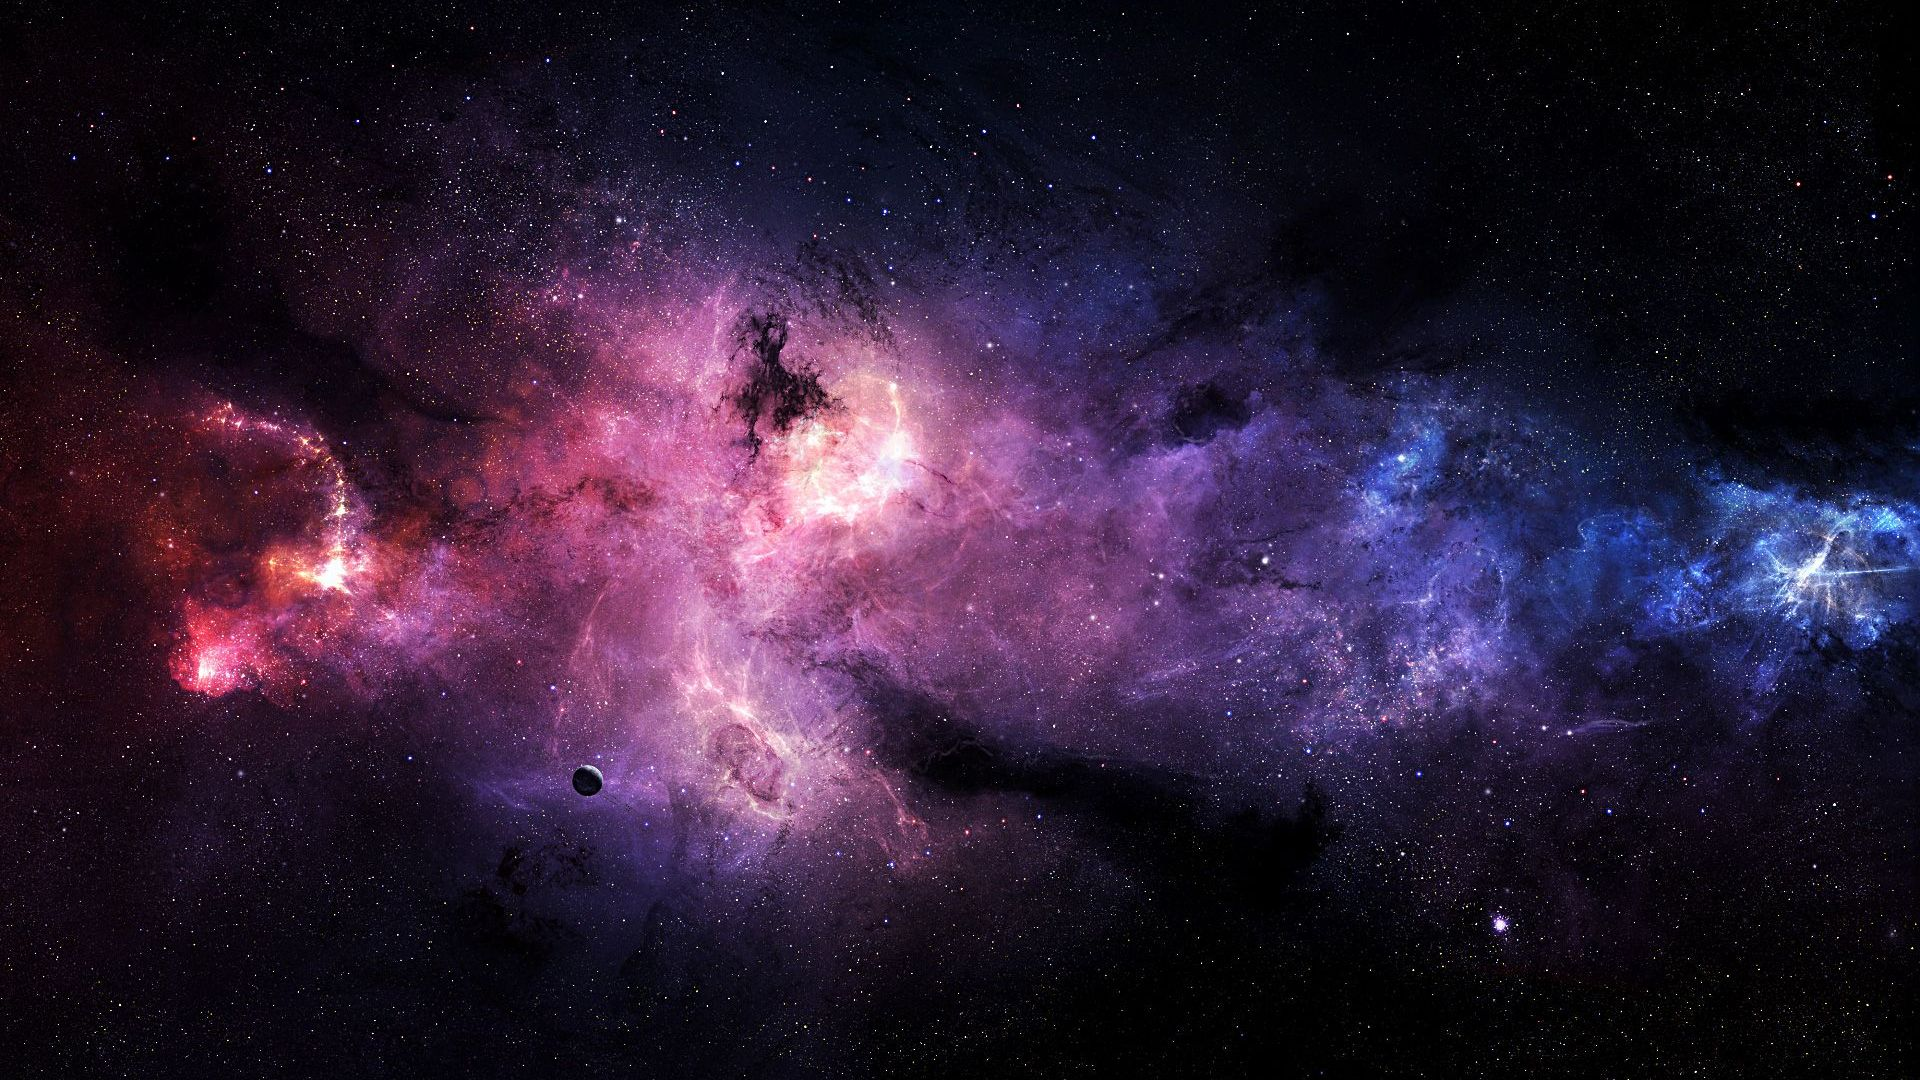 Purple And Blue On Galaxy Wallpaper HD Wallpaper with 1920x1080 1920x1080